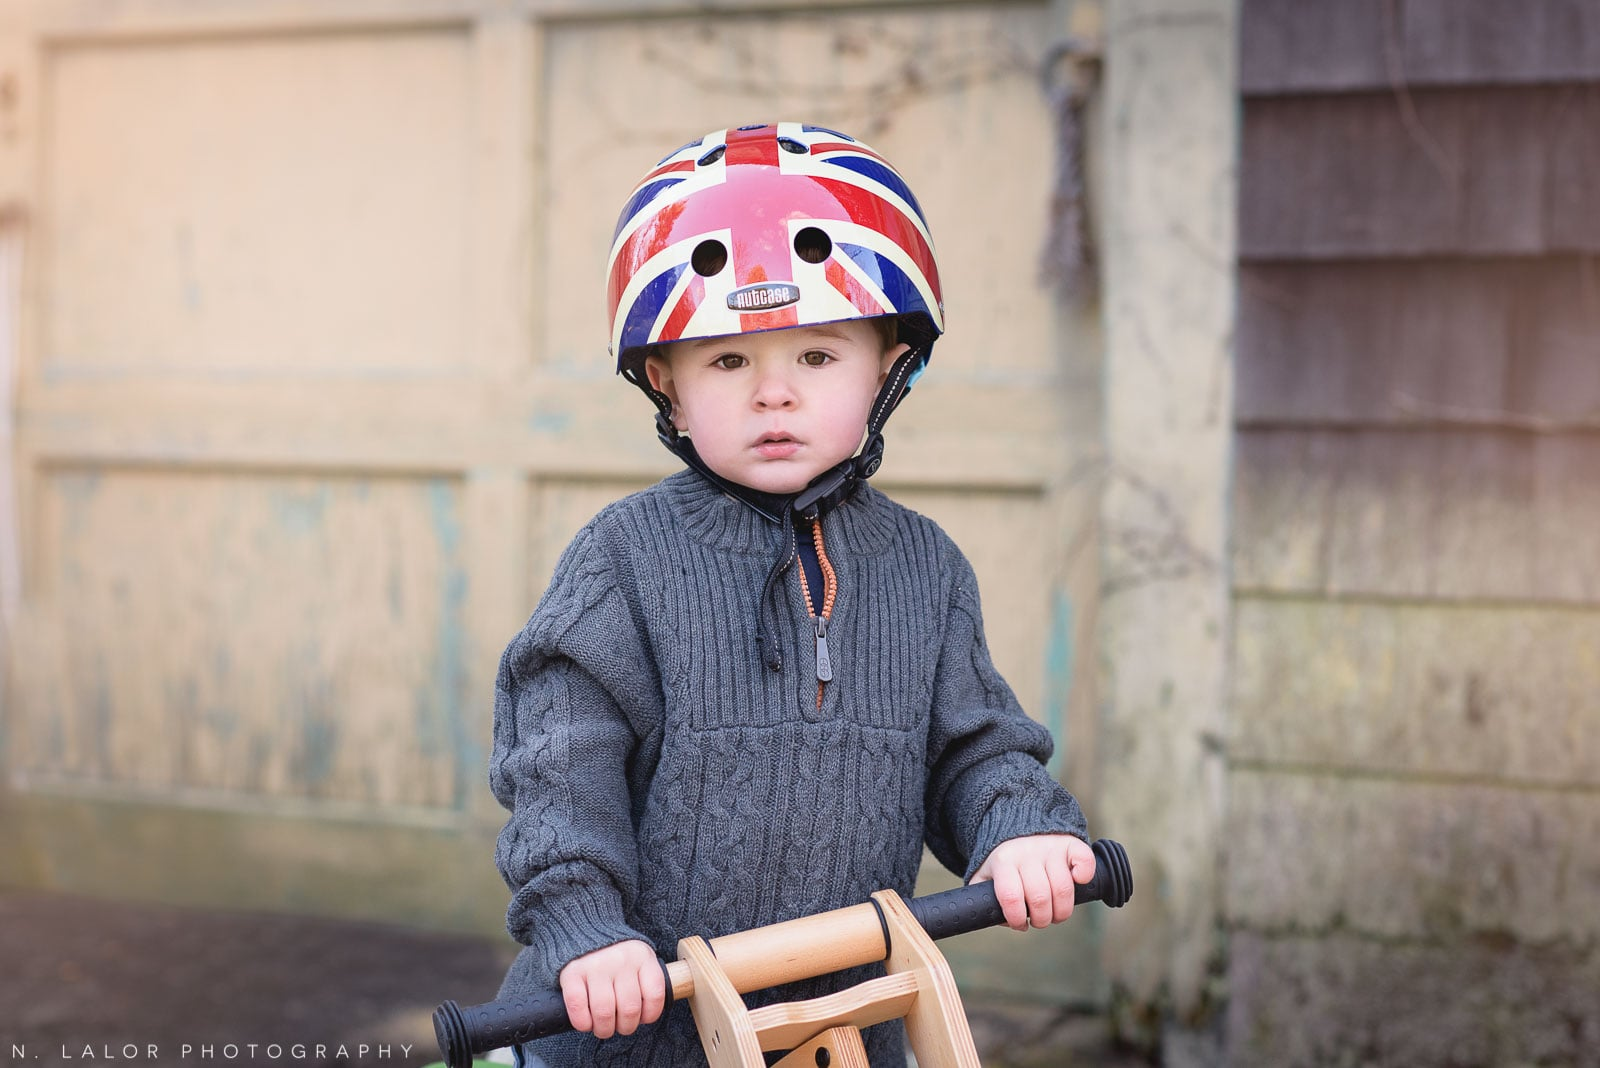 Two-year old toddler portrait with his tricycle, wearing a helmet. Lifestyle portrait by N. Lalor Photography. Norwalk, Connecticut.